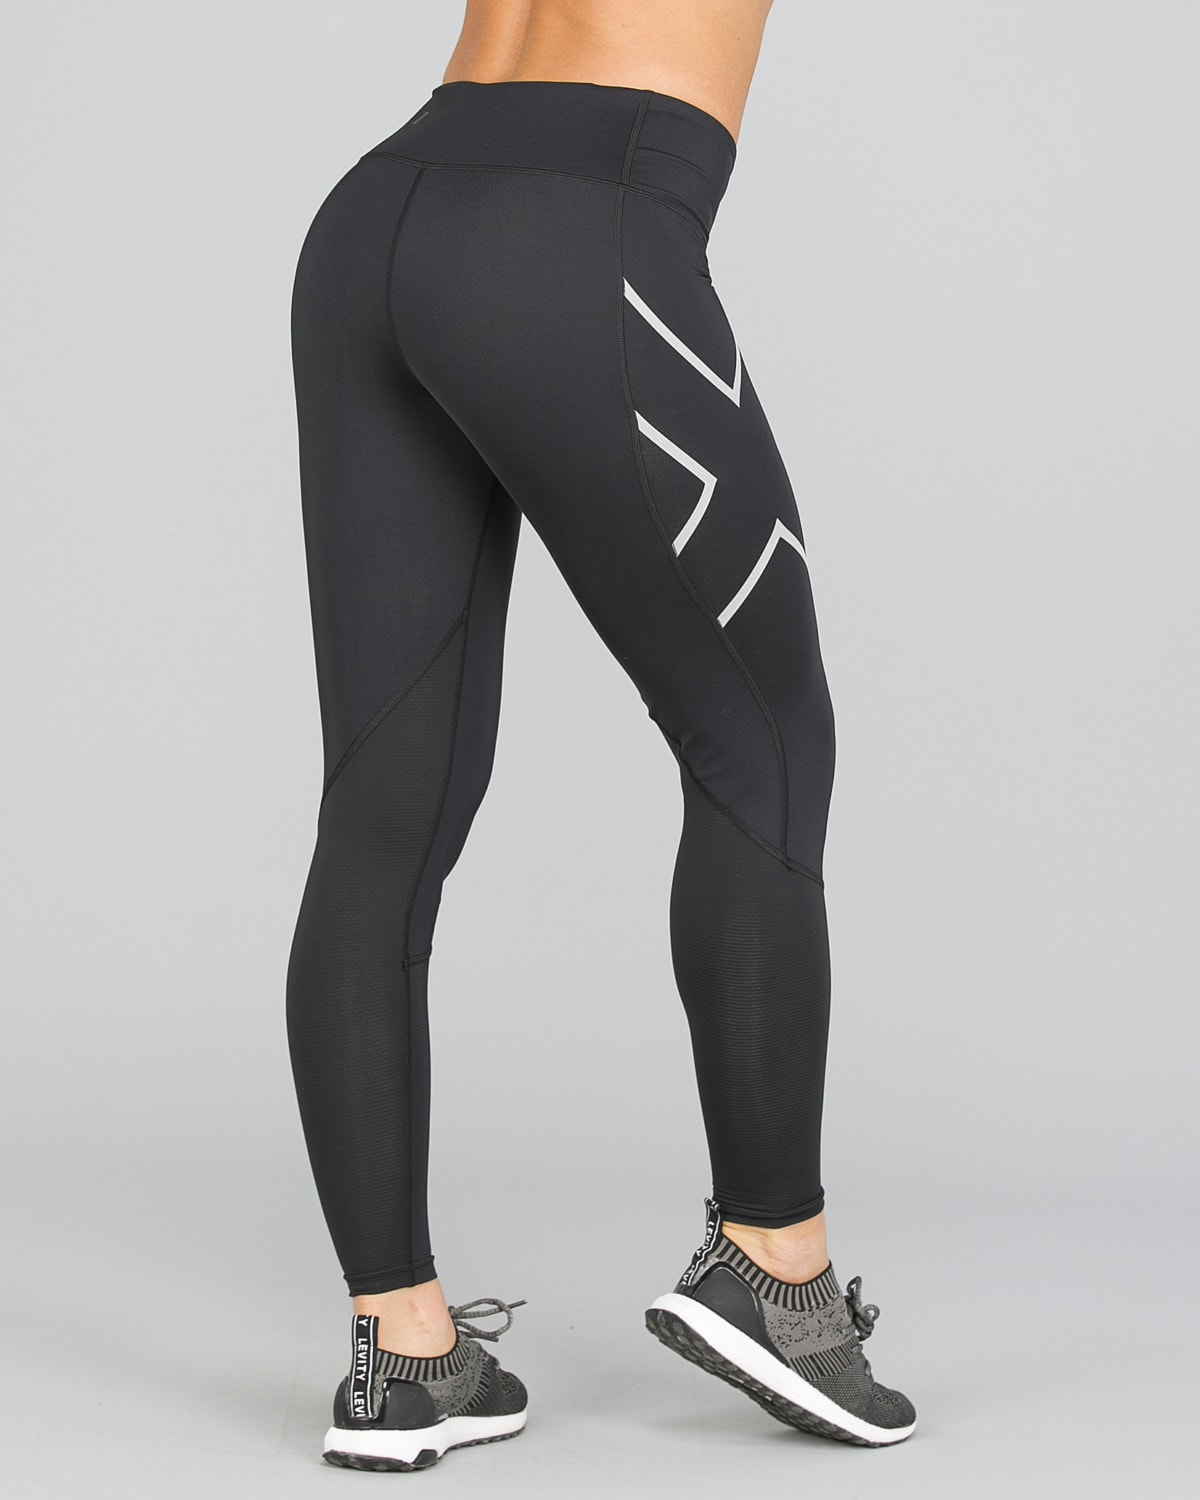 2XU Run Mid-Rise Dash Comp Tights Women – Black:Silver Reflective9